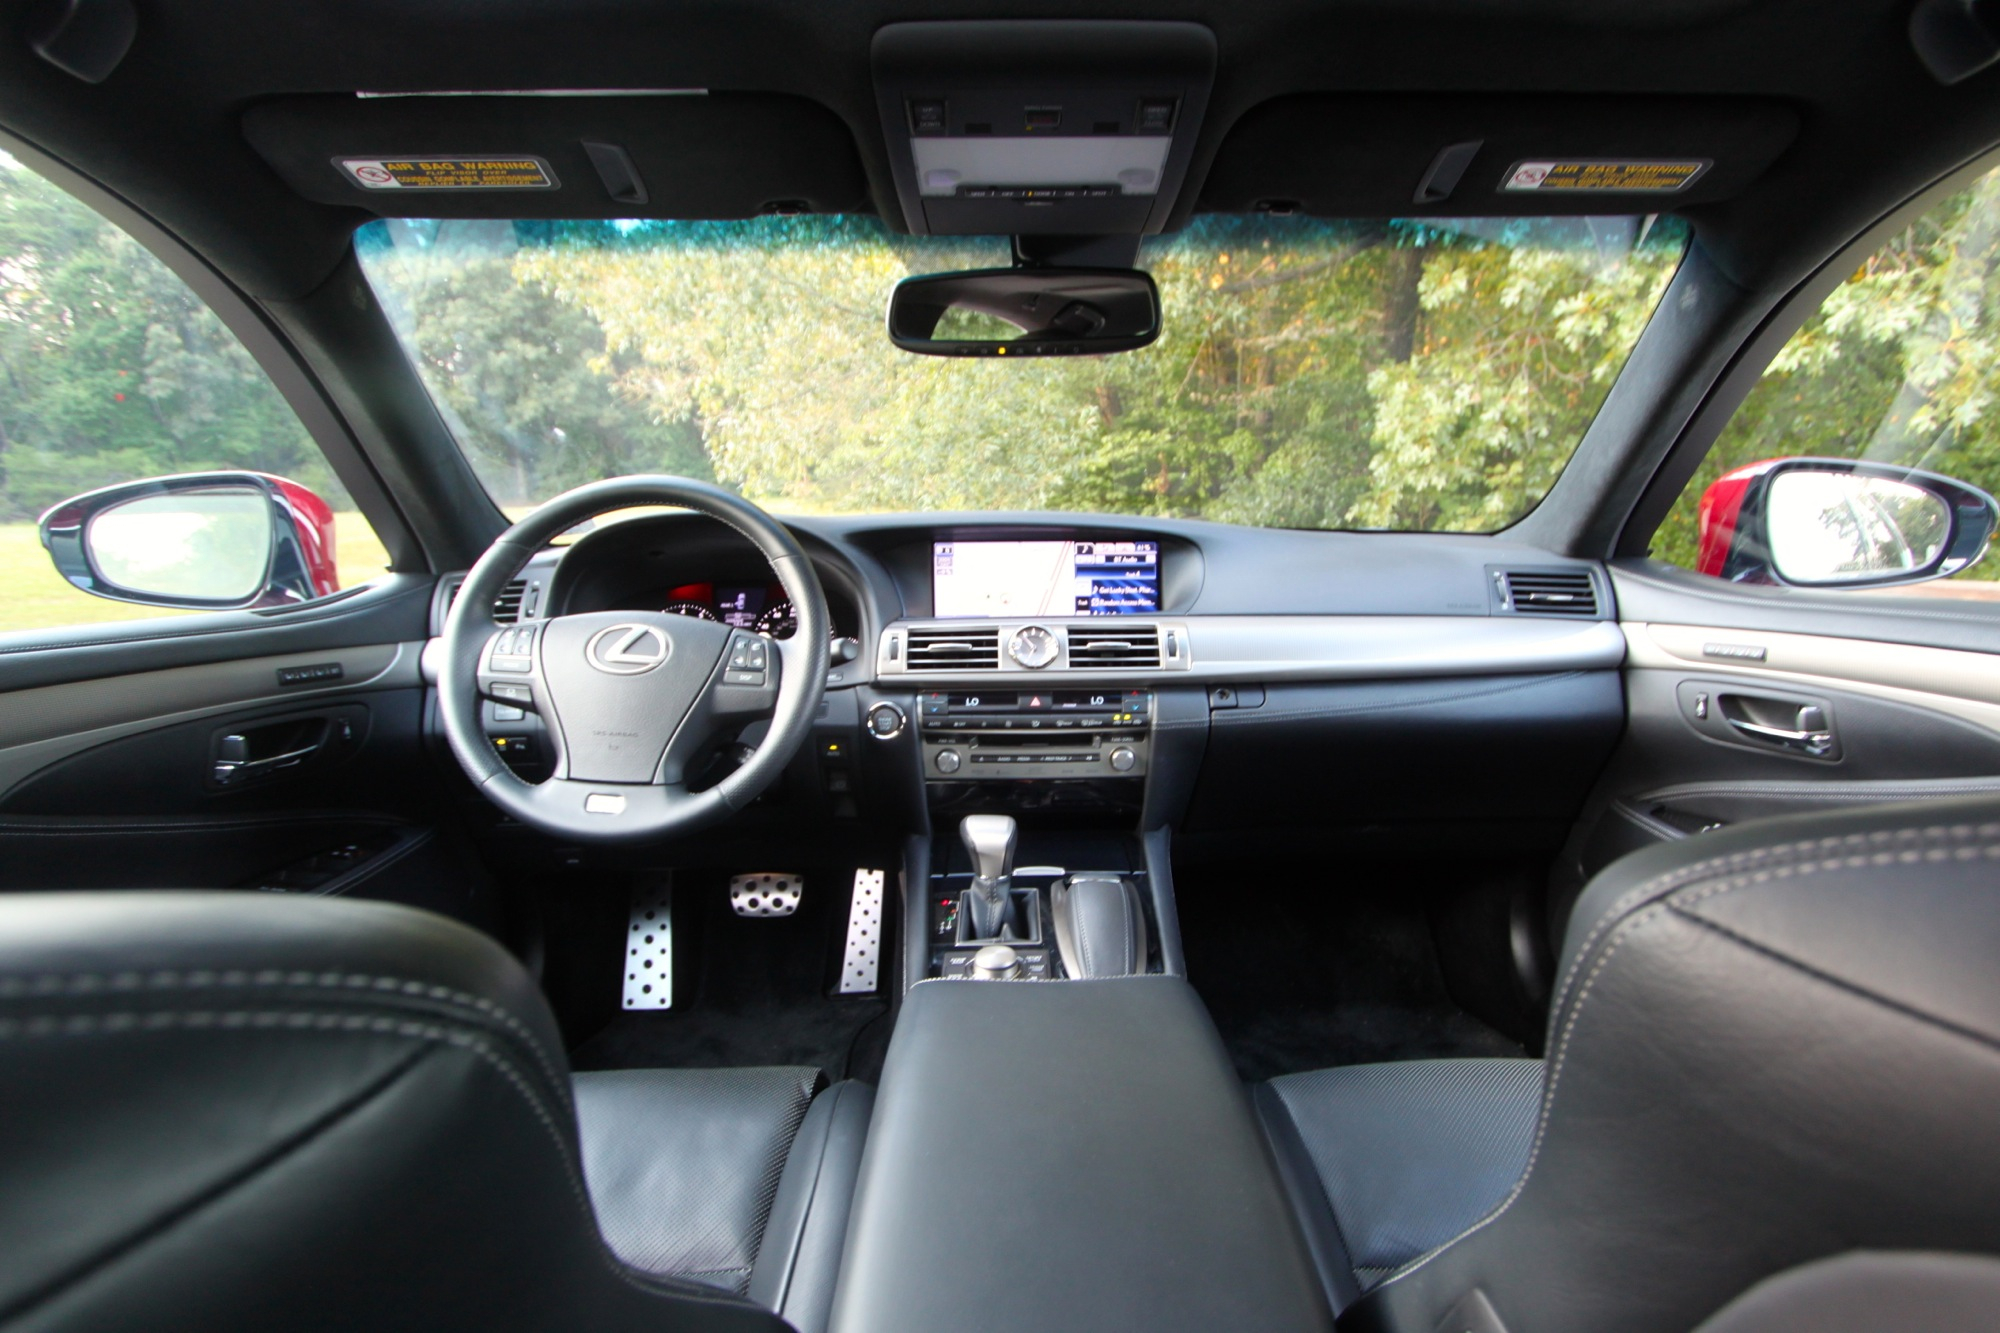 Lexus Ls 460 Manual Key User Guide That Easy To Read Wiring Diagram 2013 F Sport Review 2012 2010 Ls460l